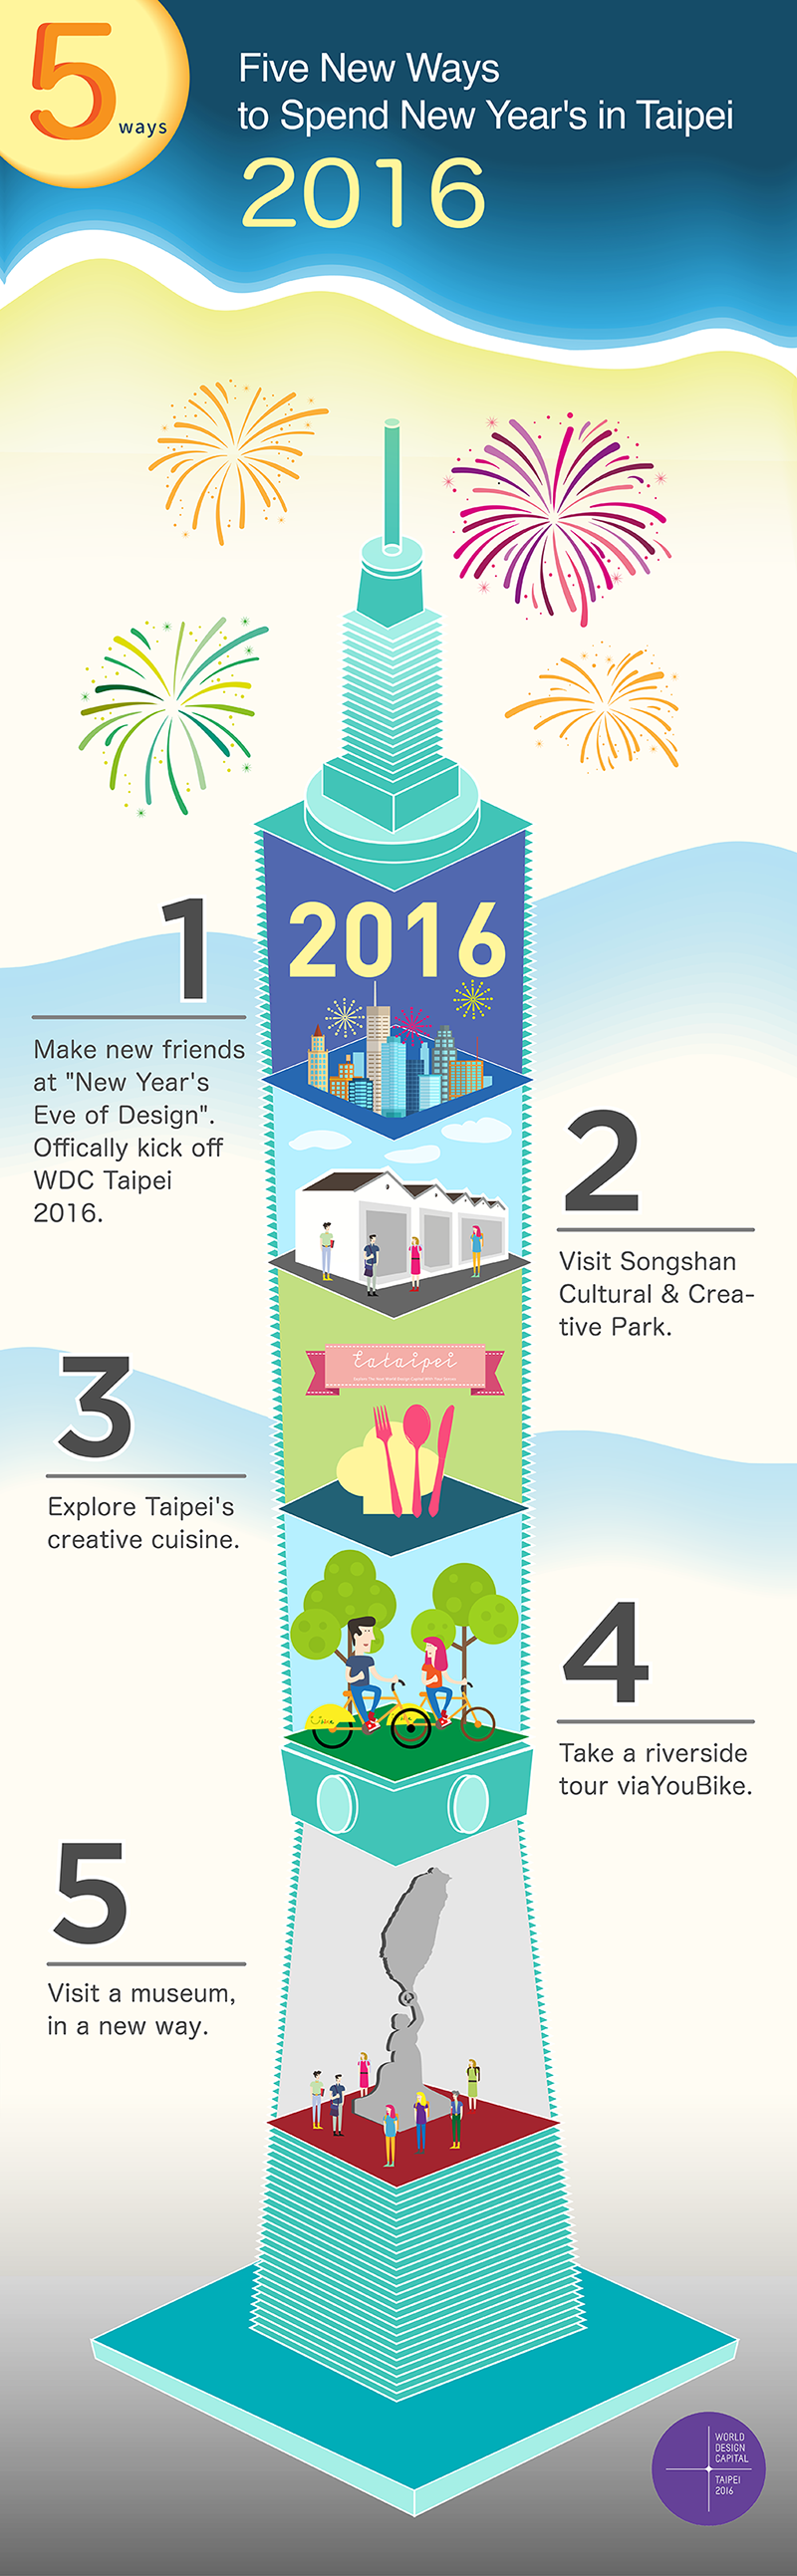 WDC Taipei 2016_Five New Ways to Spend New Year's in Taipei